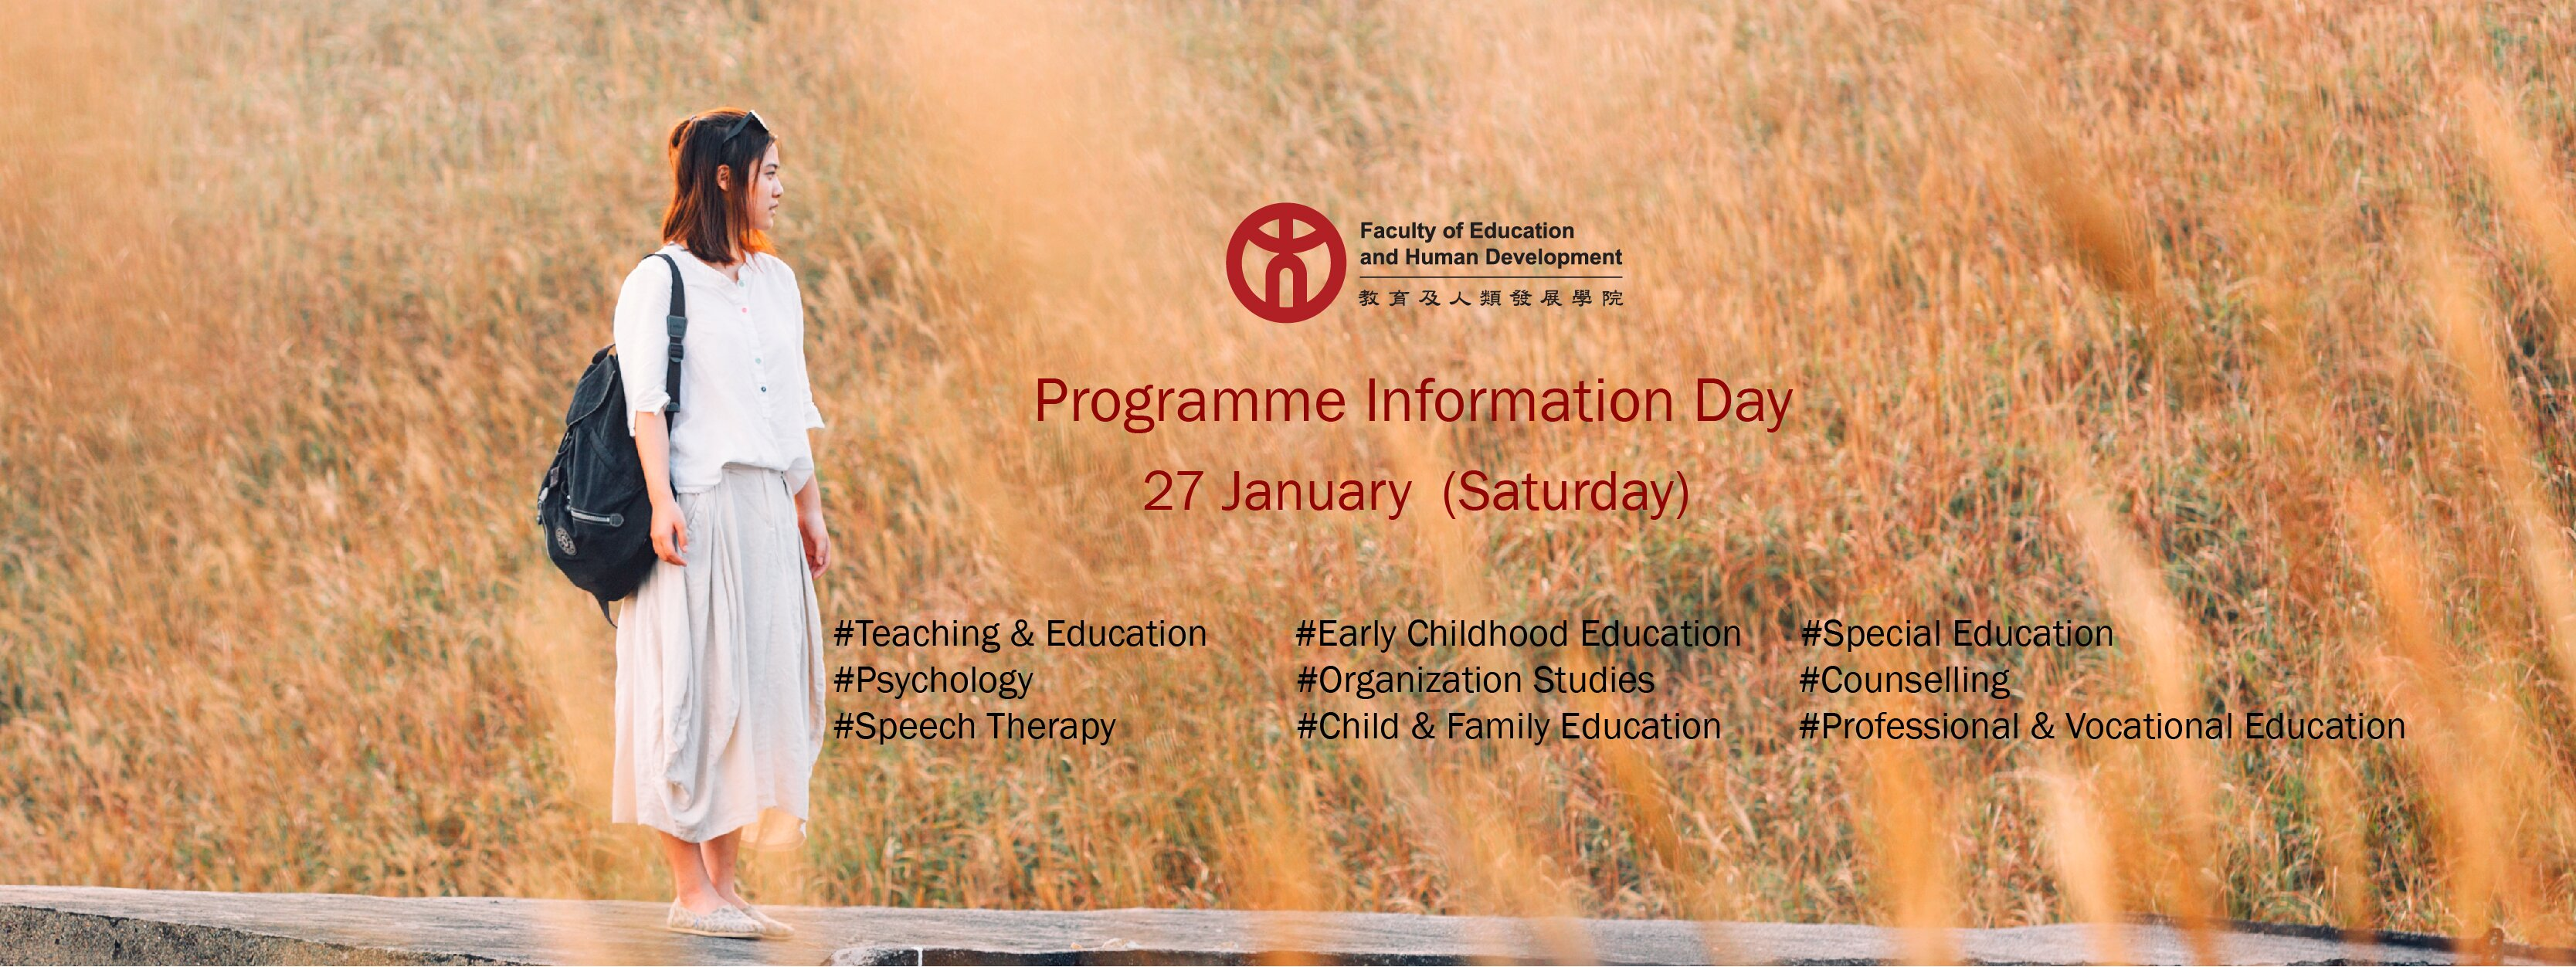 Faculty of Education and Human Development Programme Information Day